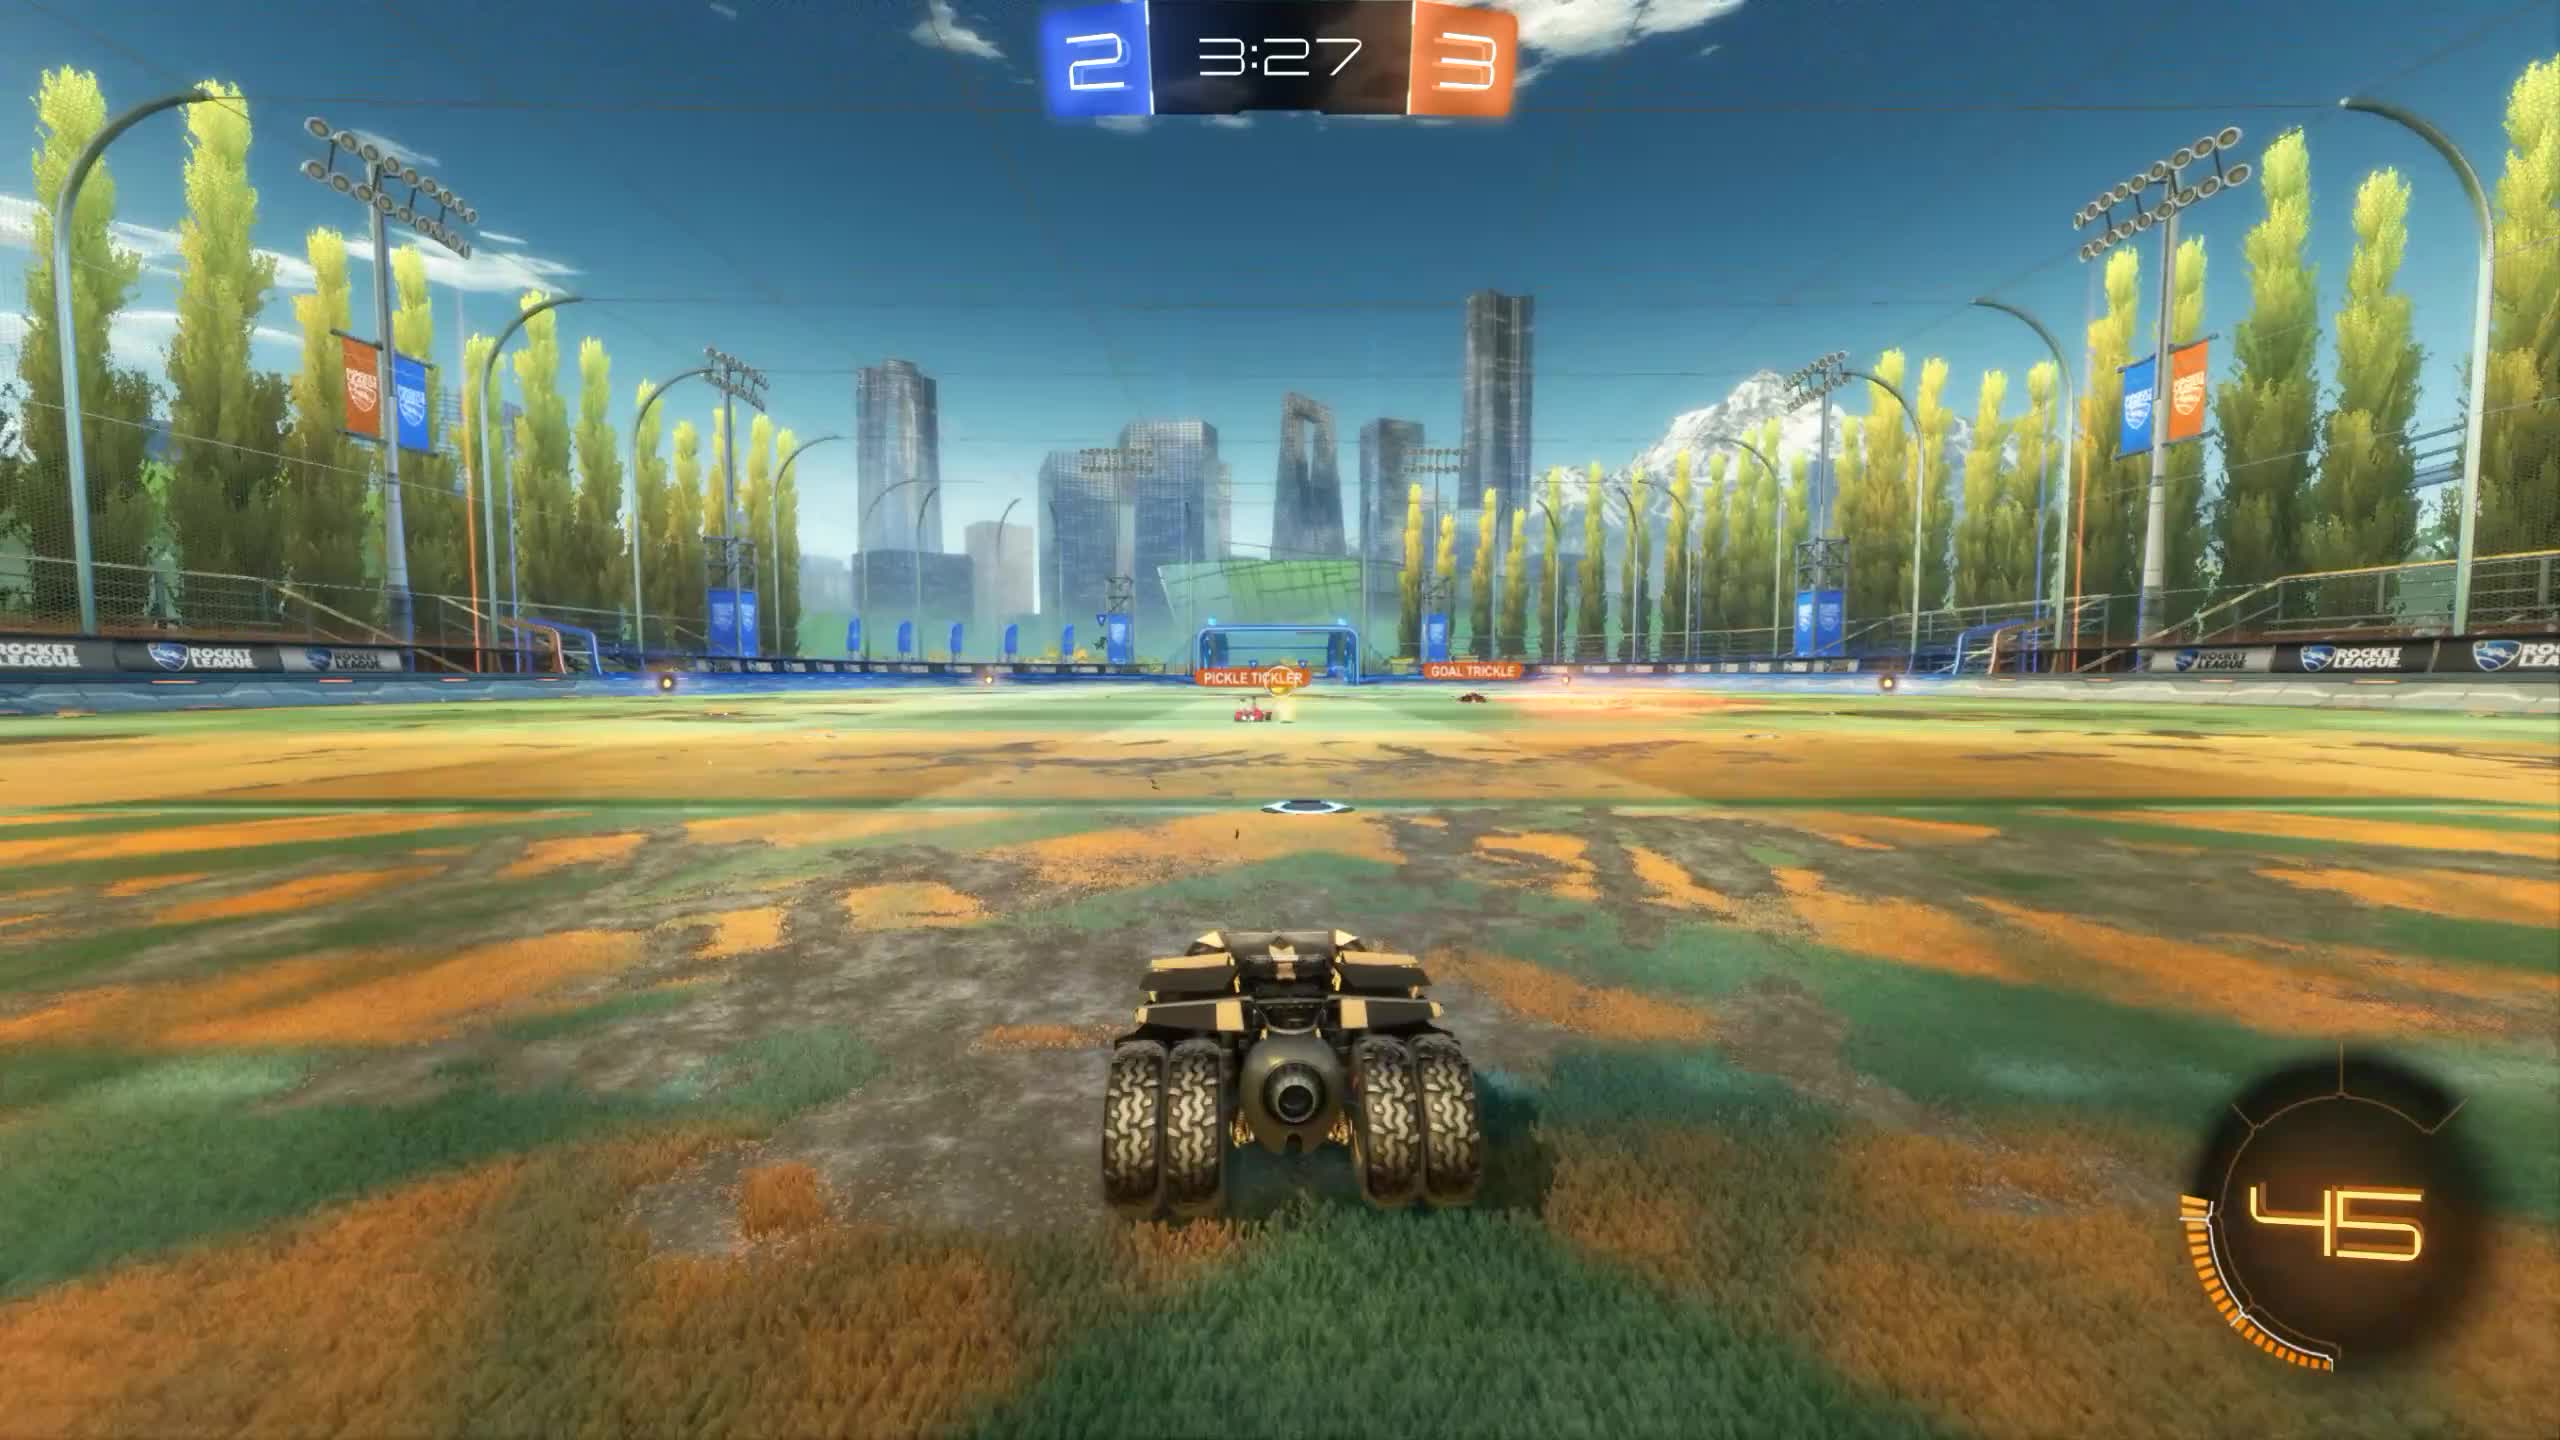 Bad Panda, BadPanda, Rocket League, RocketLeague, Save 1: C DOG GIFs